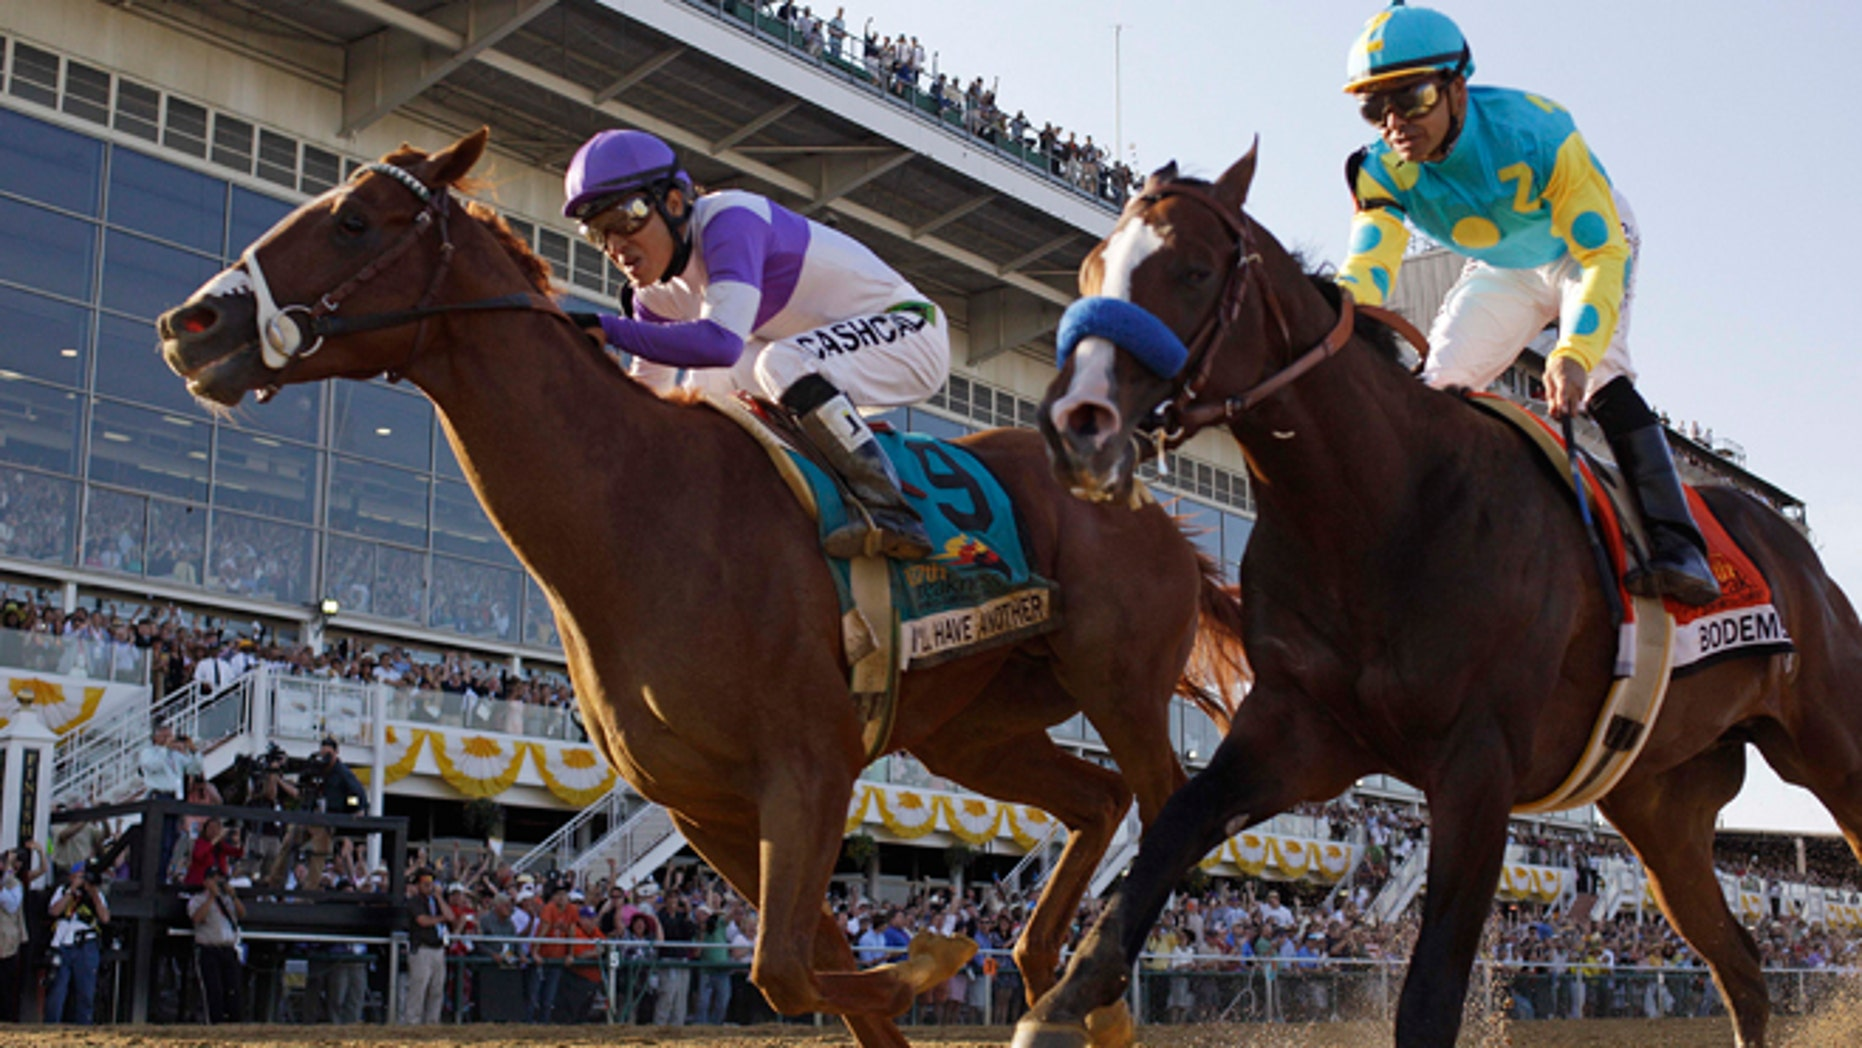 I'll Have Another (9), ridden by Mario Gutierrez, beats Bodemeister, ridden by Mike Smith, to the finish line to win the 137th Preakness Stakes horse race at Pimlico Race Course, Saturday, May 19, 2012, in Baltimore.(AP Photo/Matt Slocum)